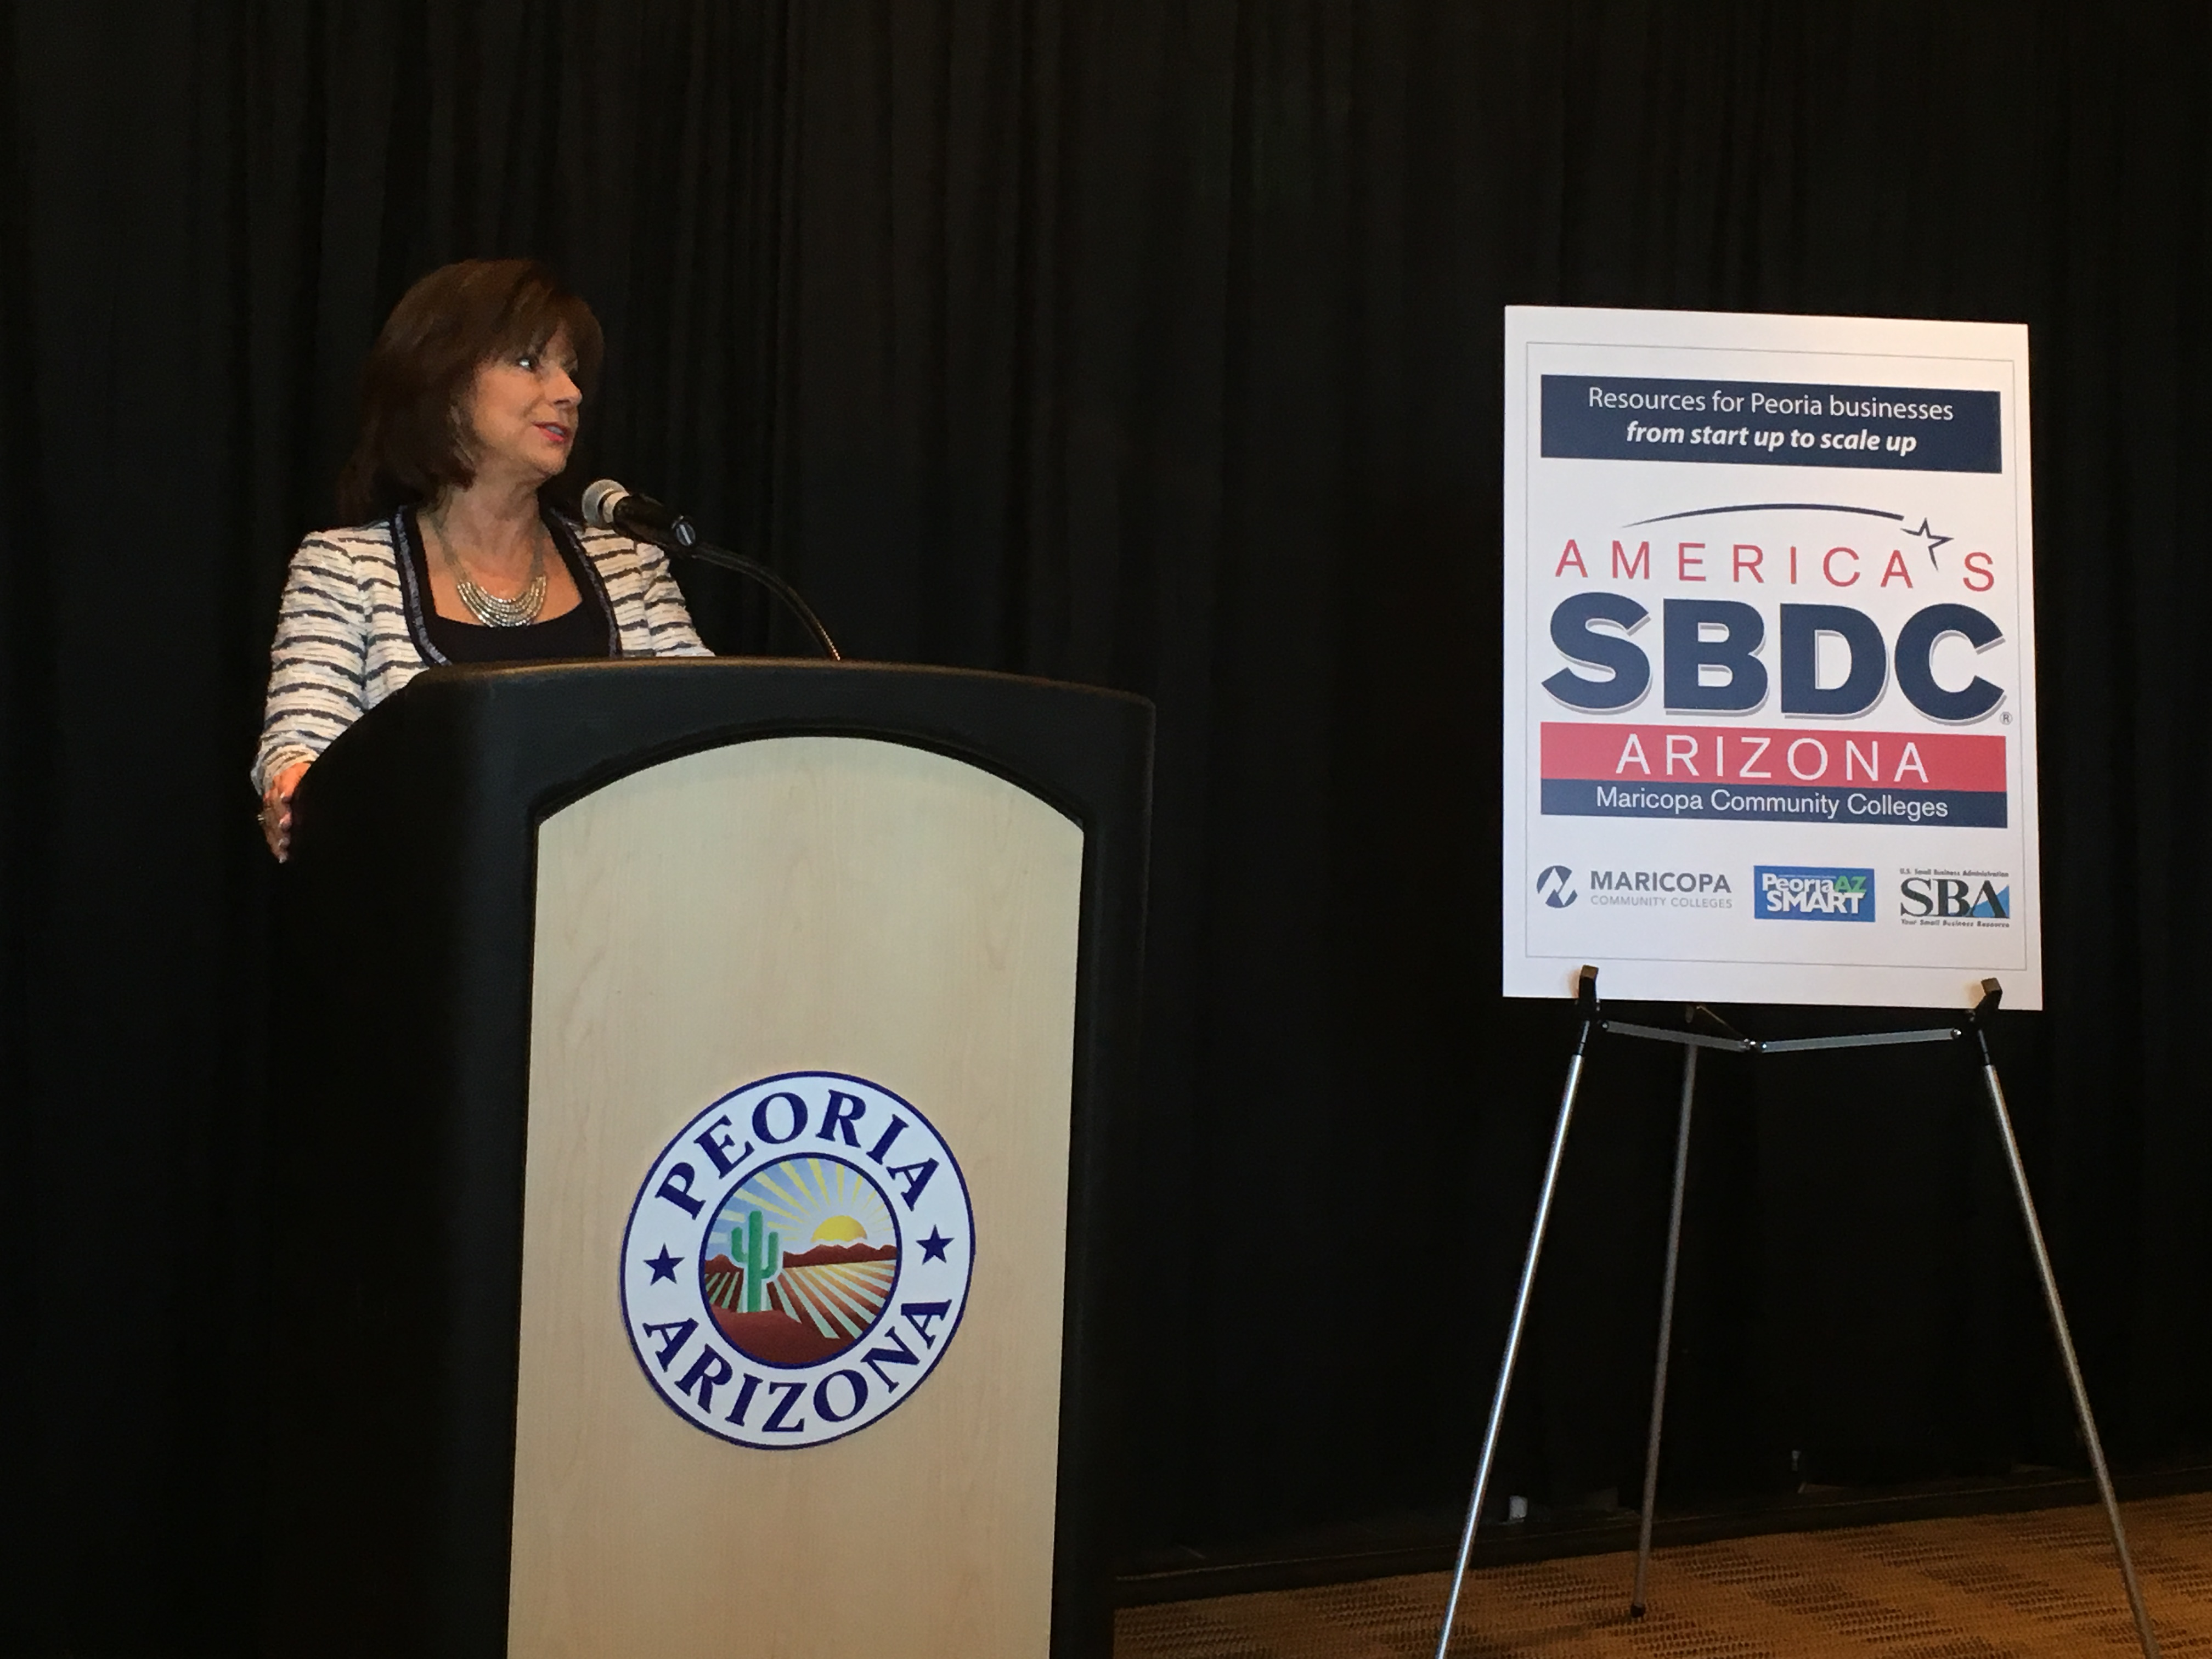 City of Peoria Partners with Maricopa Small Business